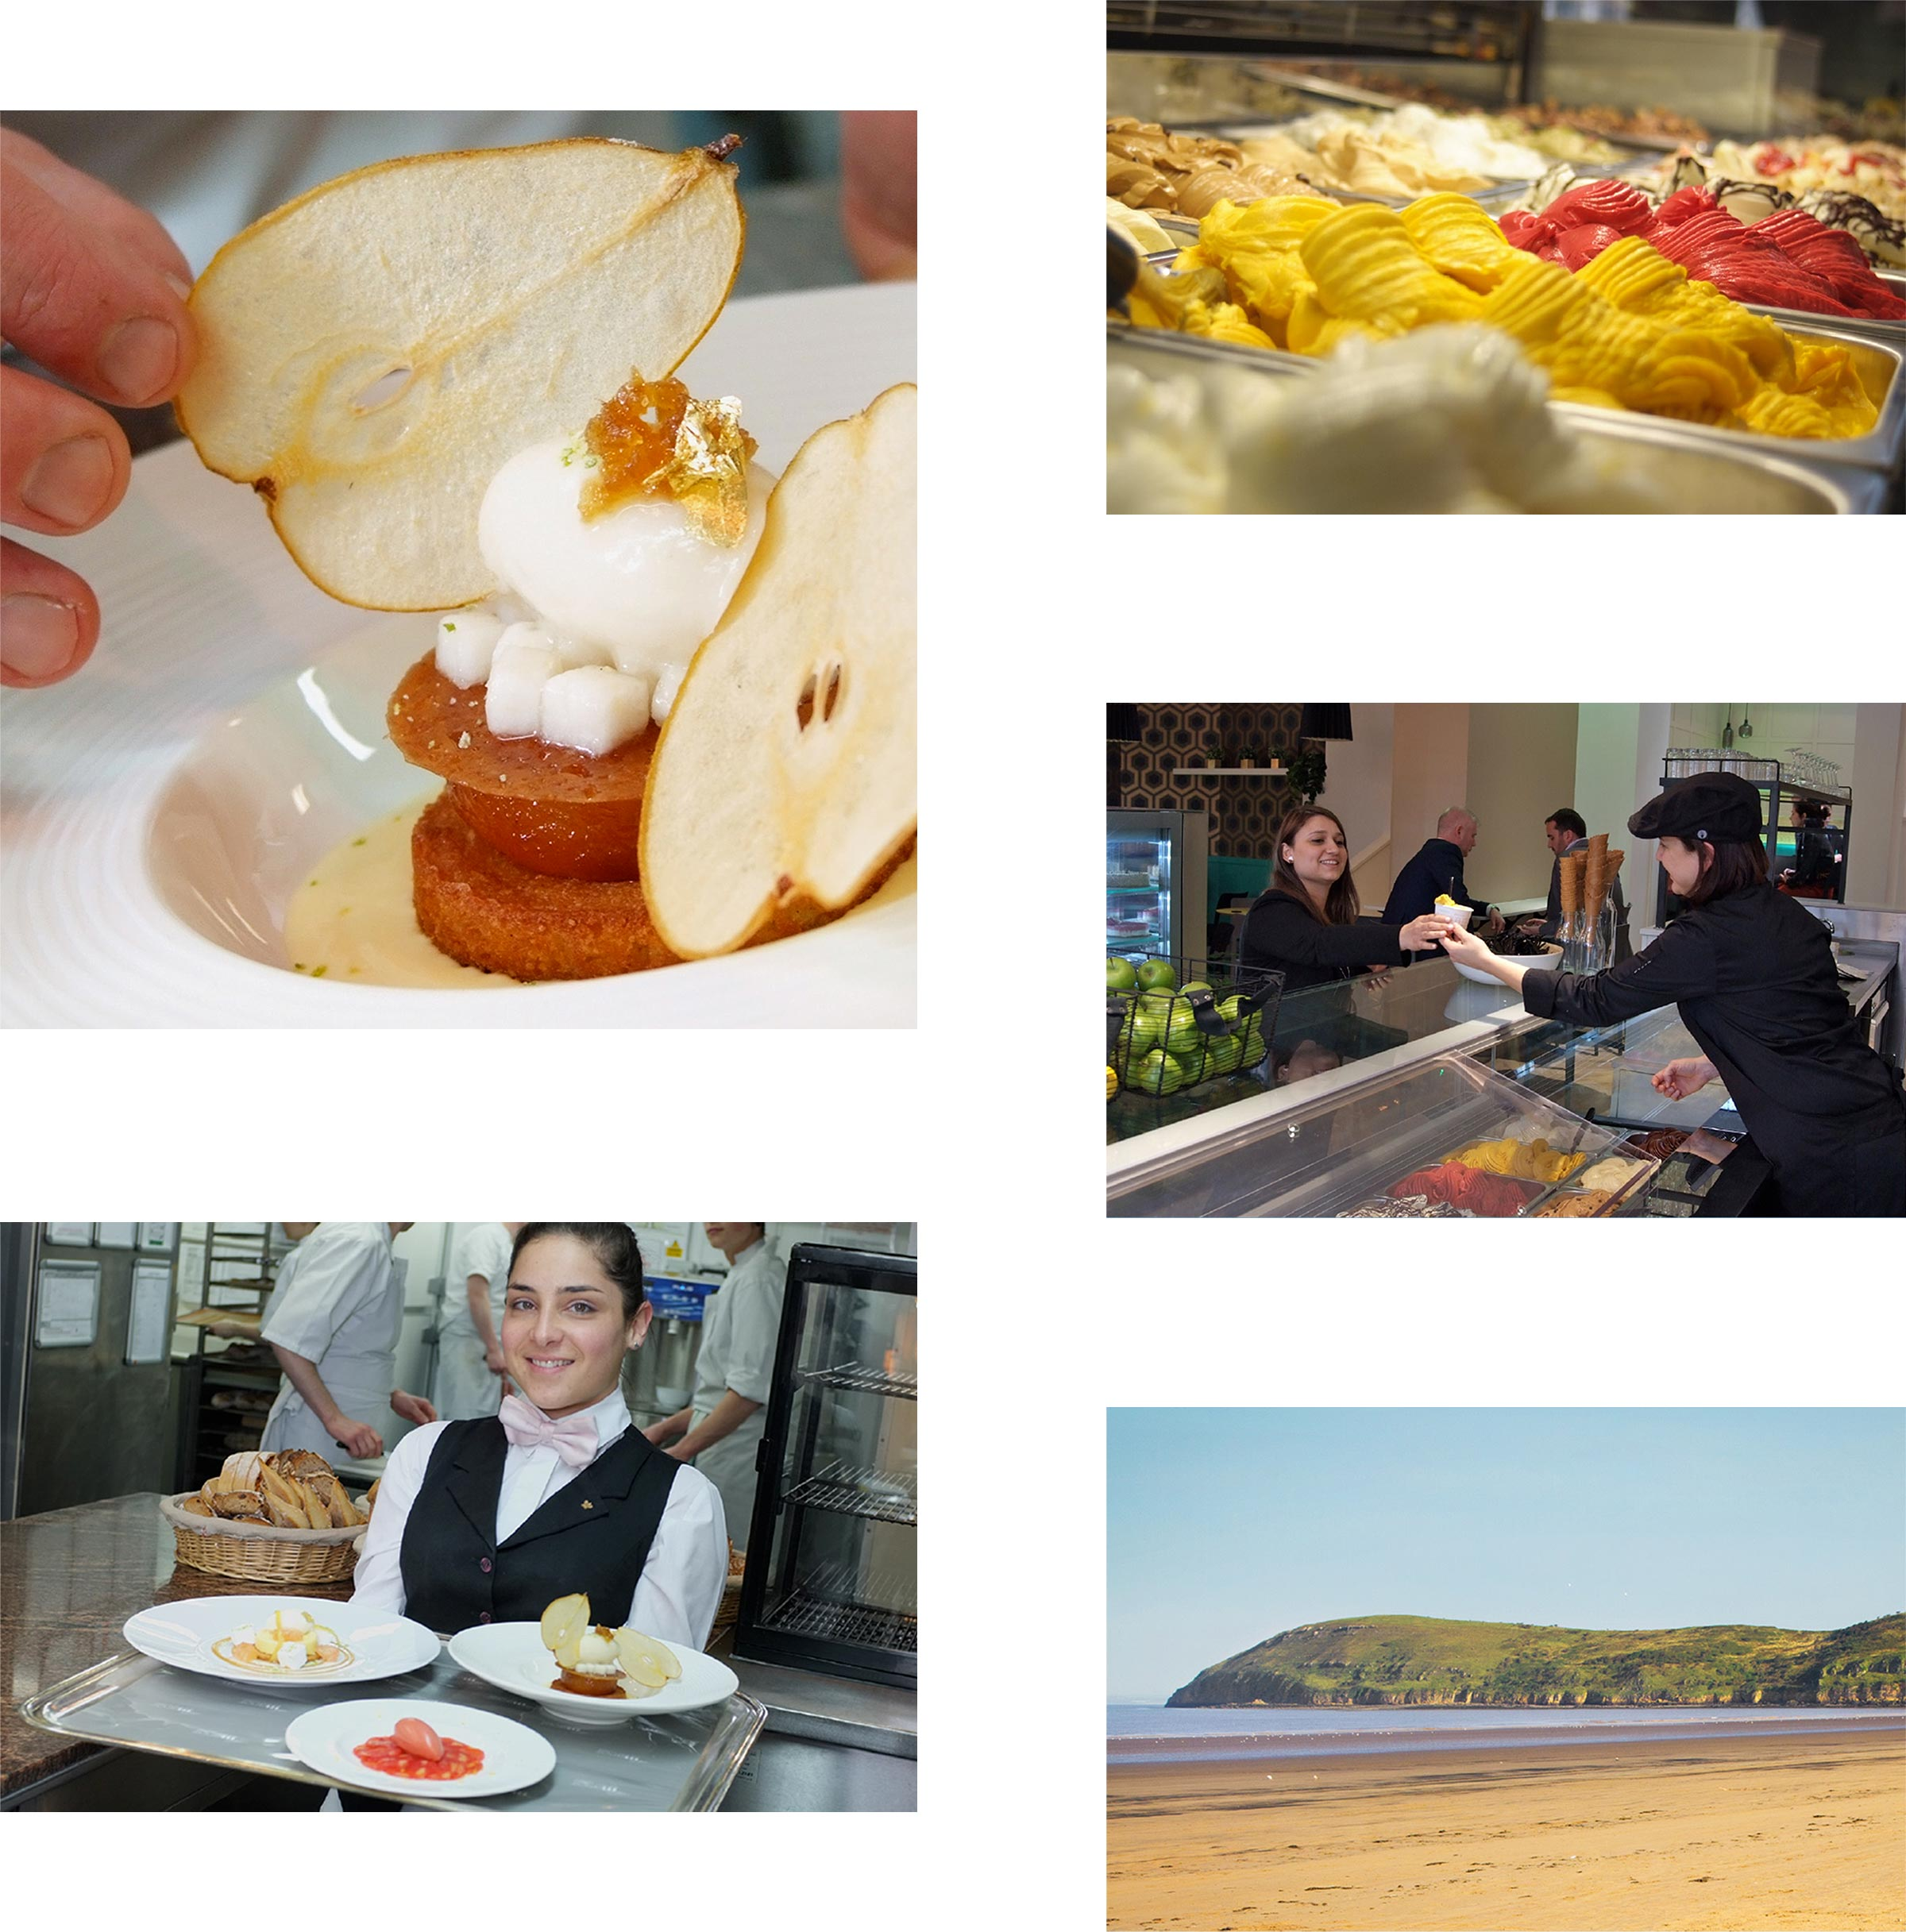 A collage showcasing the photography done for the brochure: chefs cookings, serving food, restaurant exteriors.